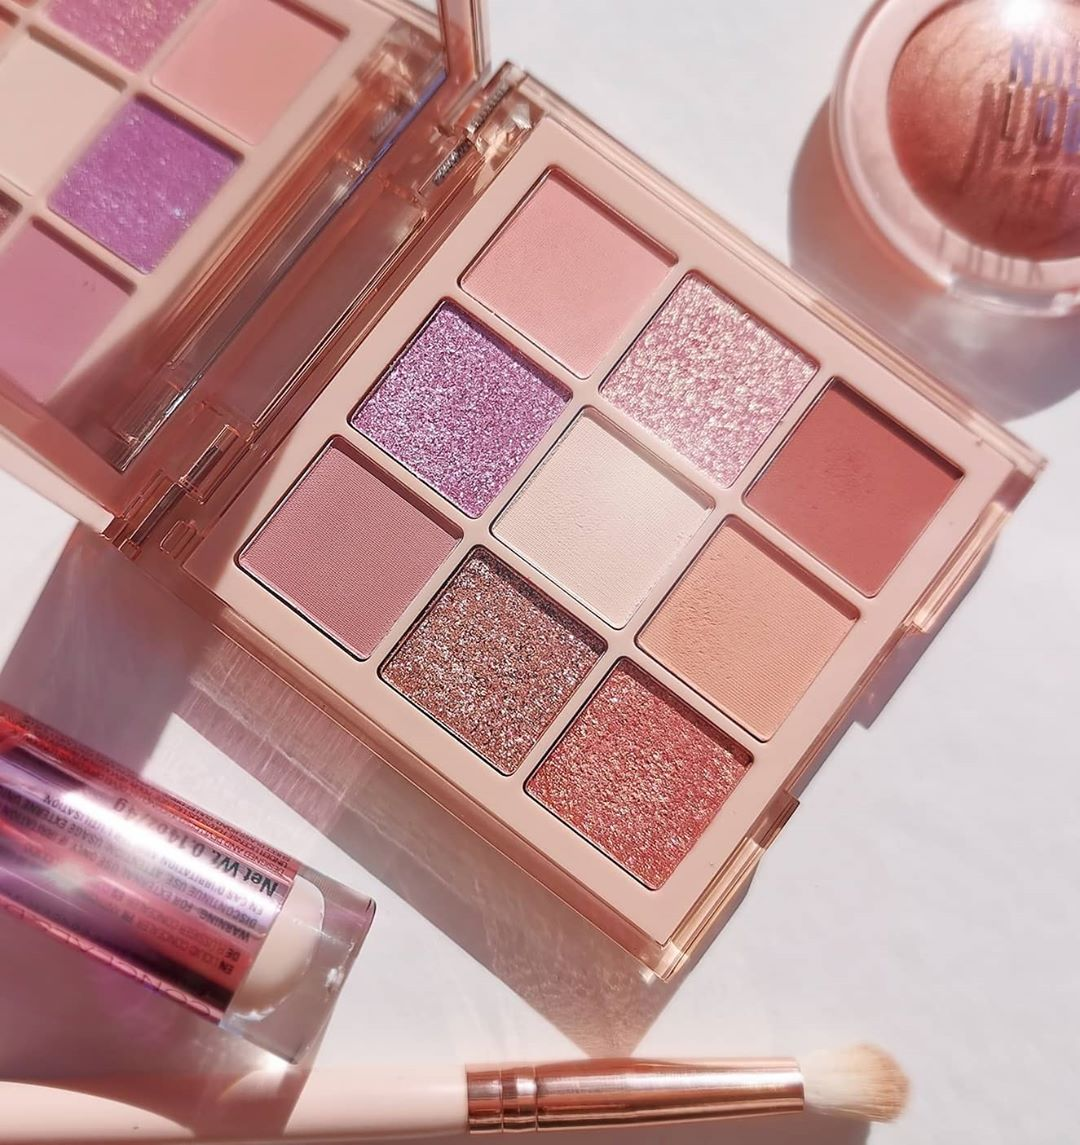 Hudabeauty Nude Light Palette 🌸 Here' Makeuplover - Makeup Products